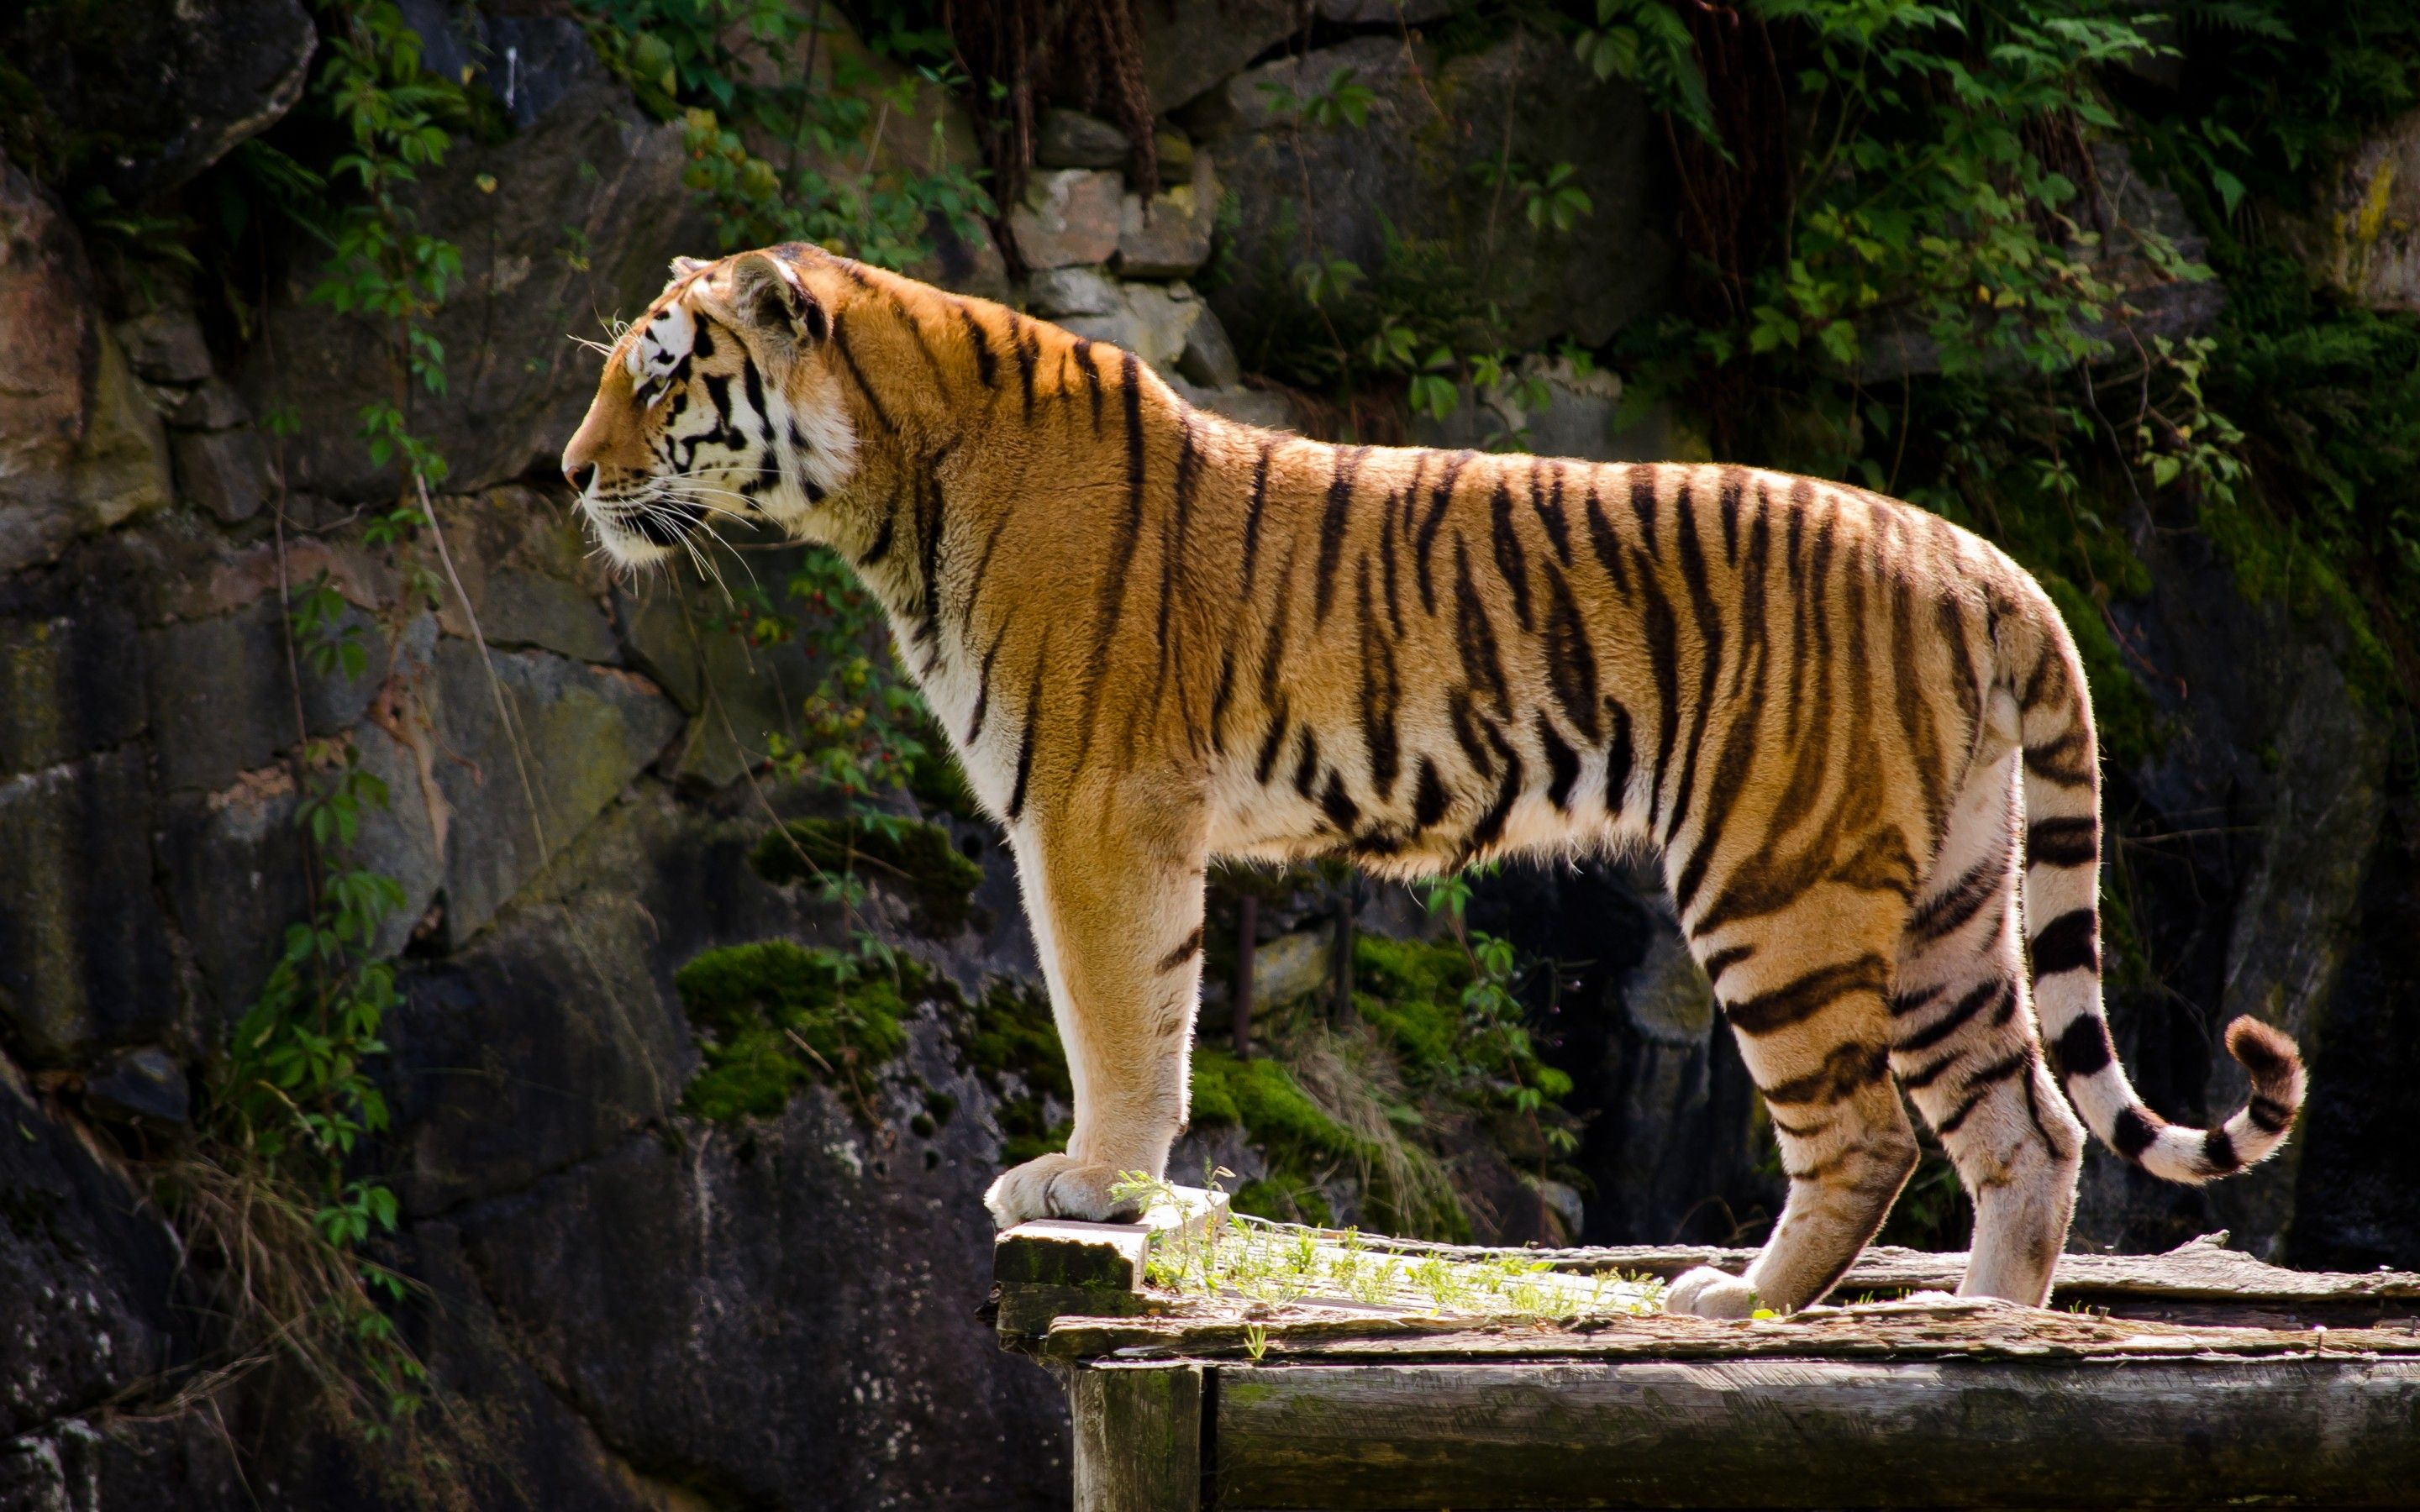 Cute Stitch On Side Wallpaper Tiger Profile Google Search Tiger Pictures Tiger